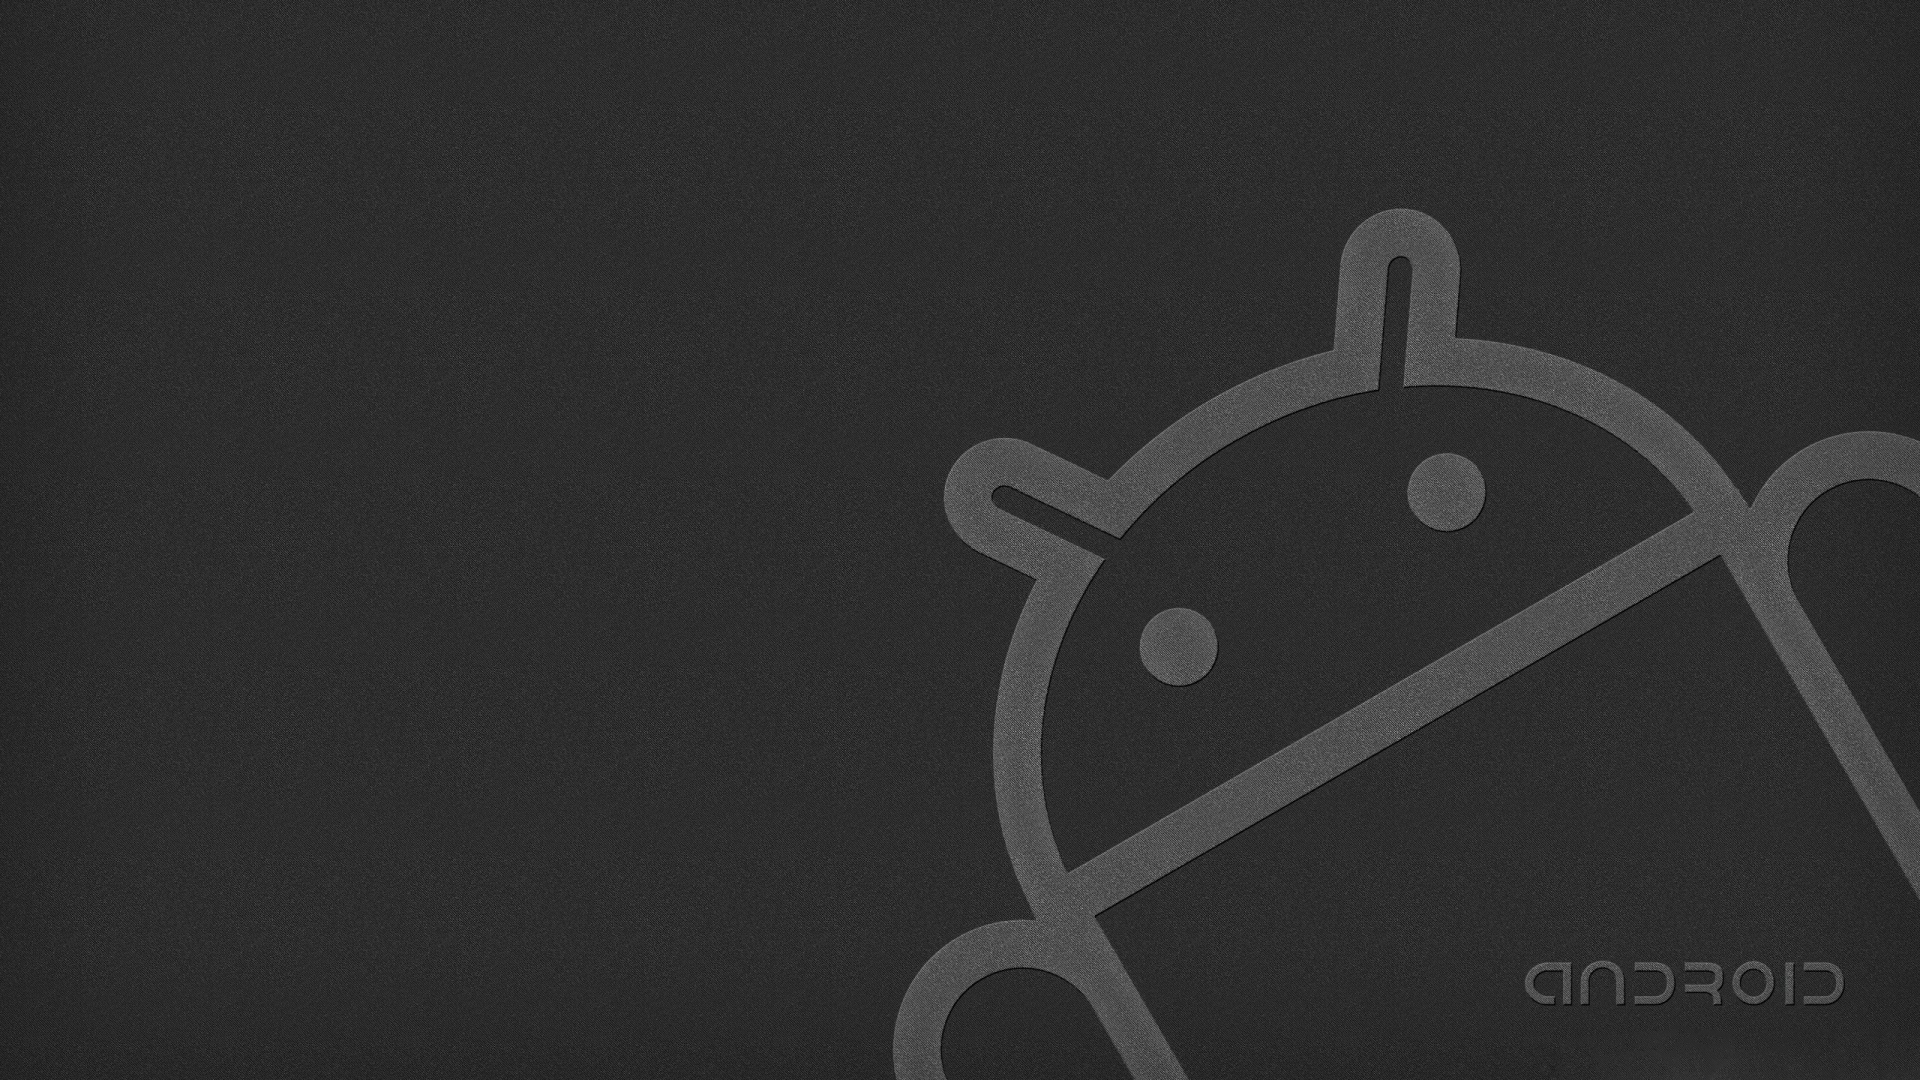 android logo design picture #14925 wallpaper | walldiskpaper